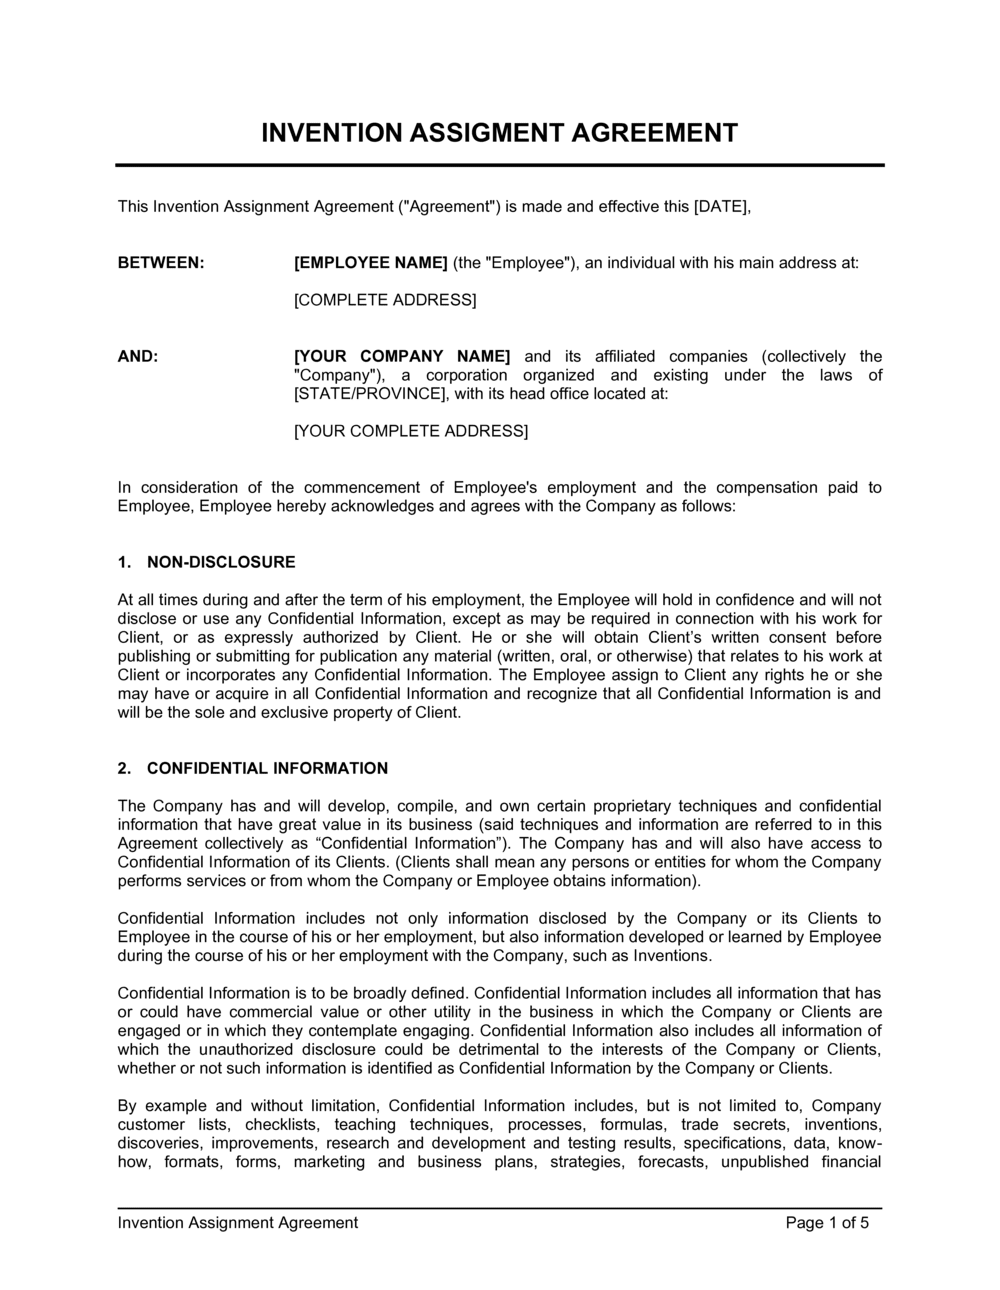 Business-in-a-Box's Invention Assignment Agreement Template